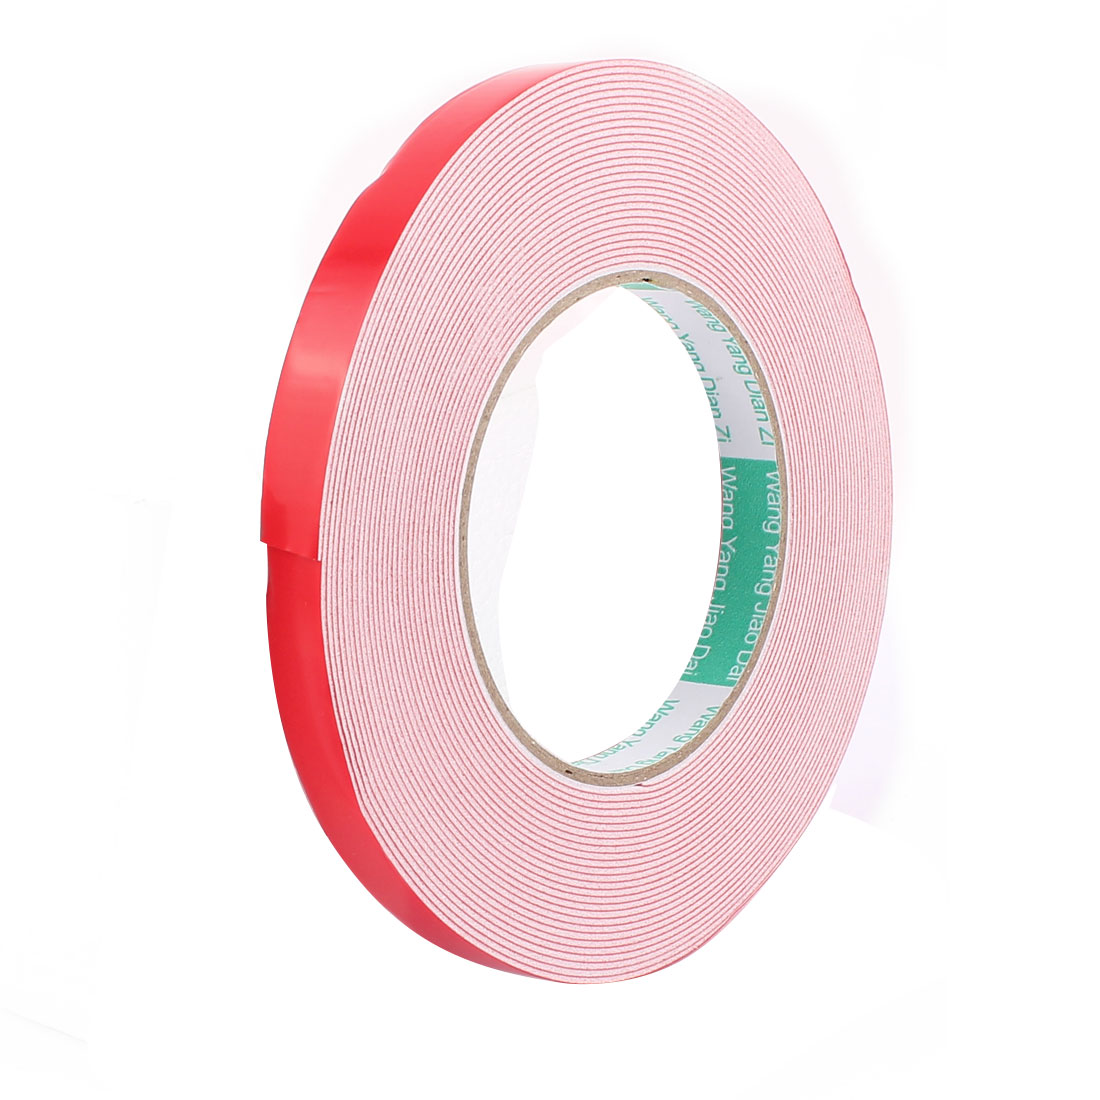 12MM Width 10M Length 1MM Thick White Dual Sided Waterproof Sponge Tape for Car